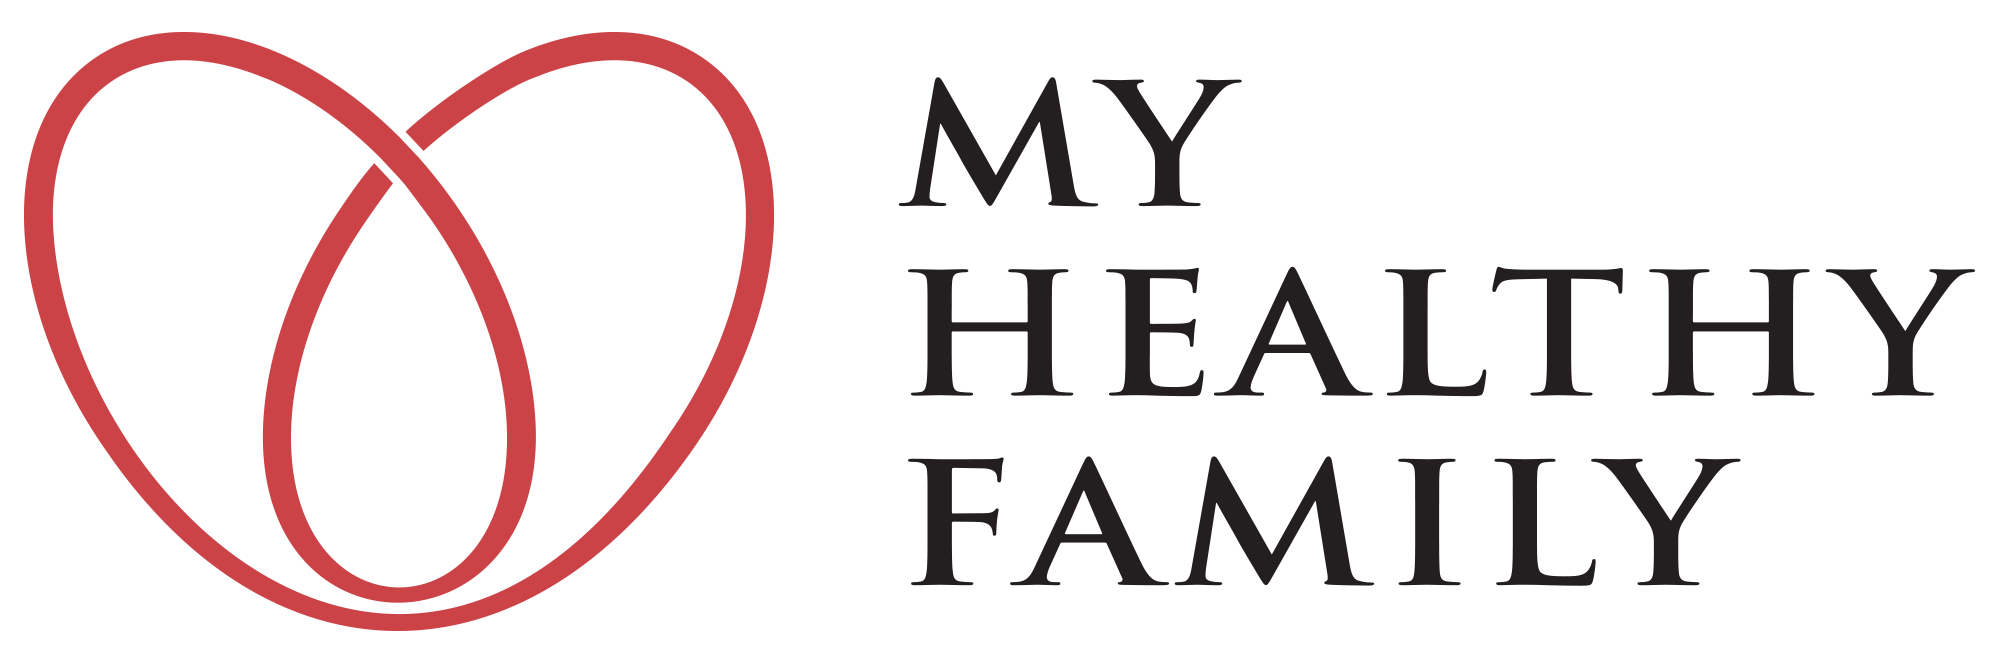 My Healthy Family Logo-Black